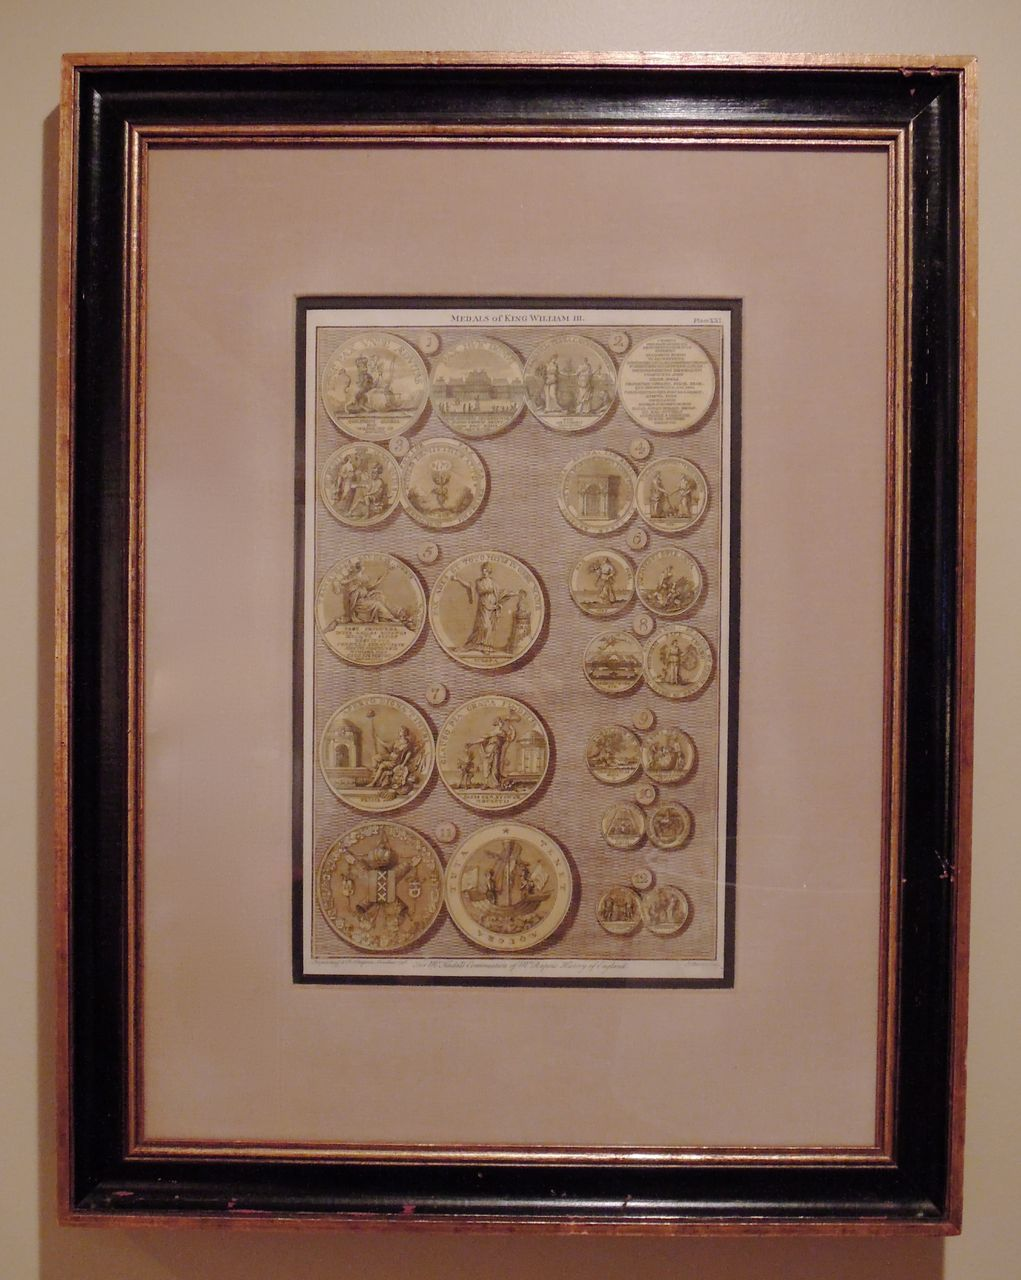 English Engraving, English Medals of King William III, Londini Ca. 1746